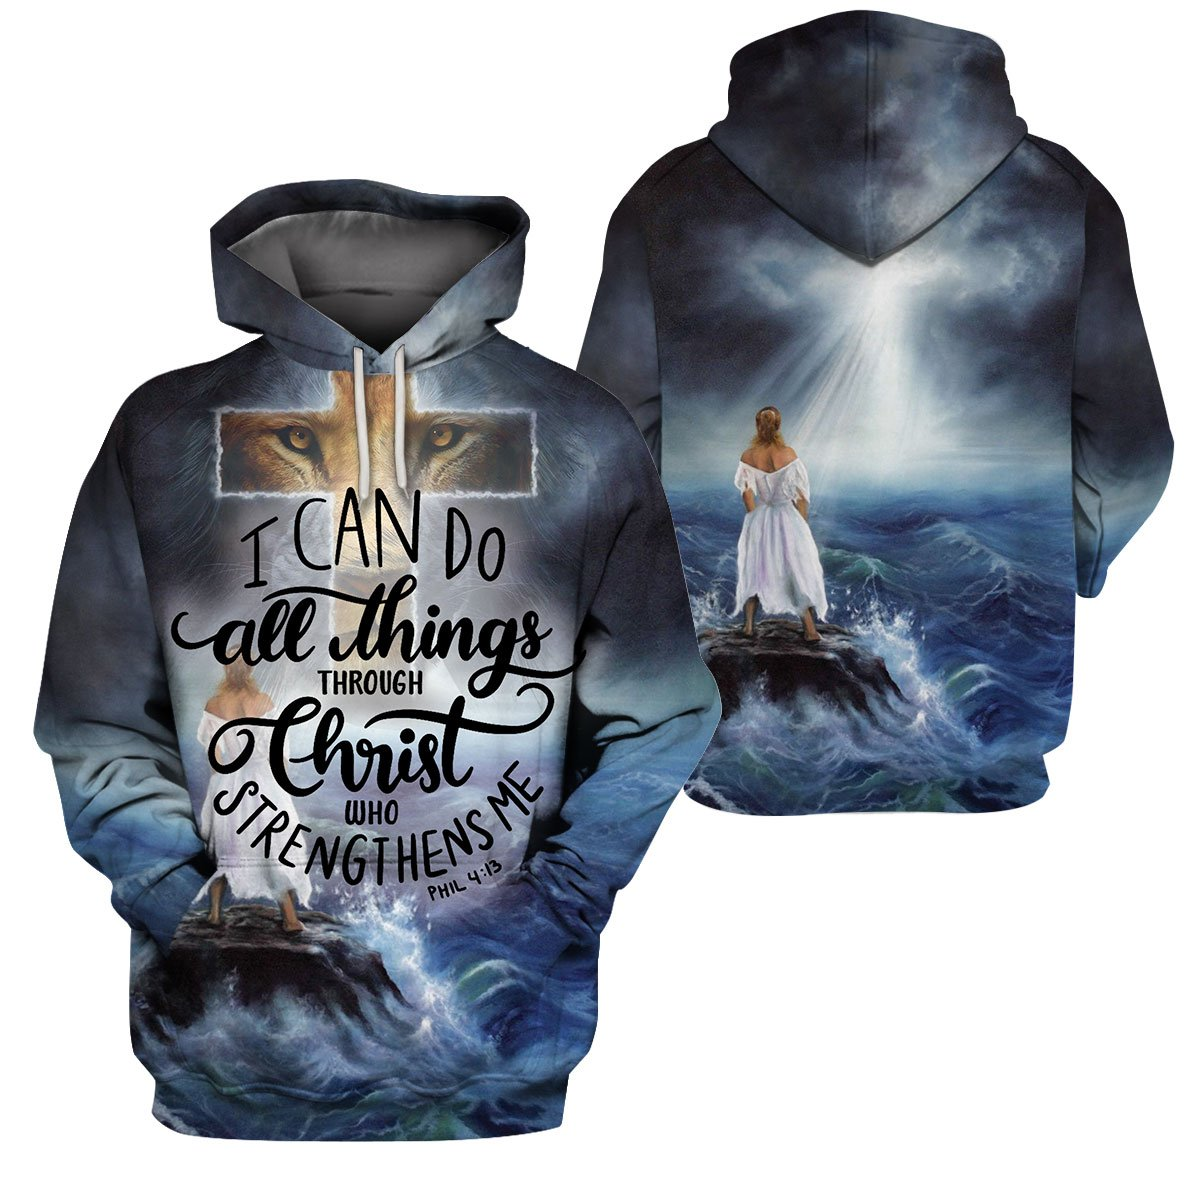 3D Christian Apparel - I Can Do All Things Through Christ Who Strengthens Me - 4zOutfitters Merchandise